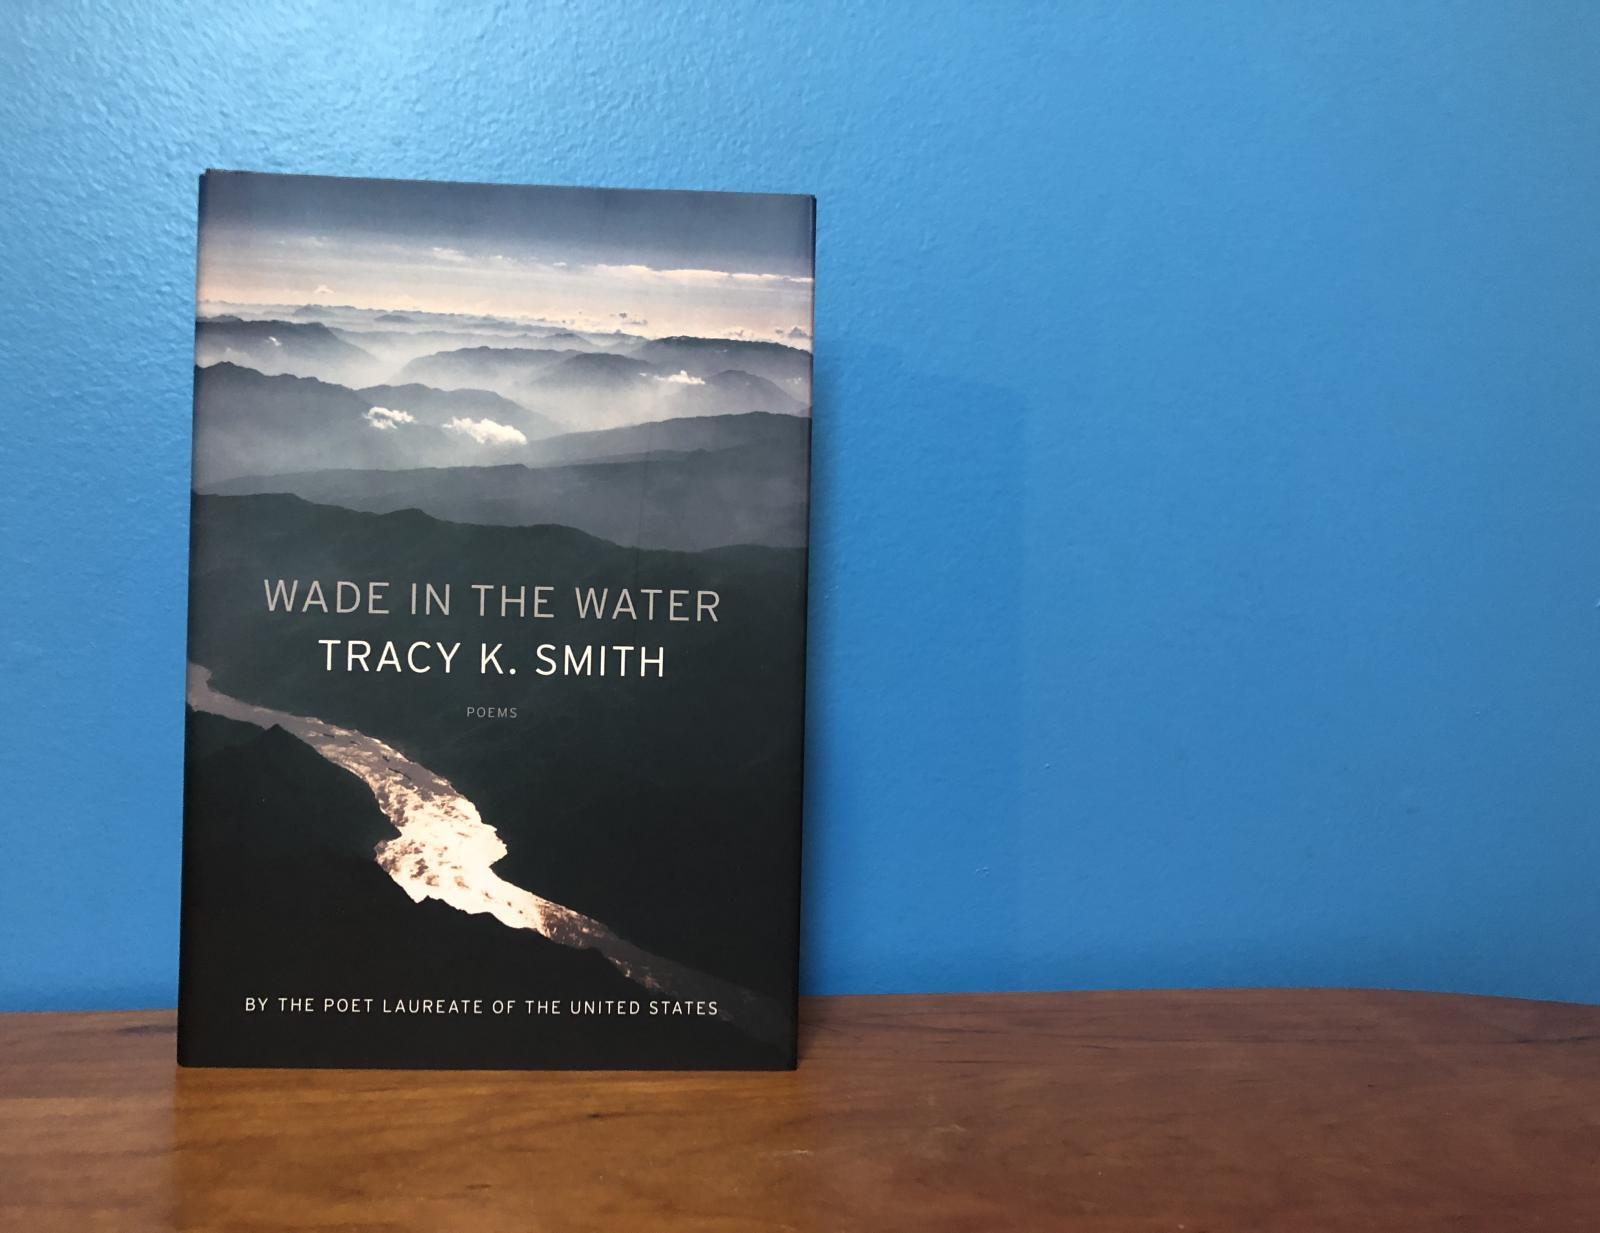 cover of Tracy K. Smith's WADE IN THE WATER